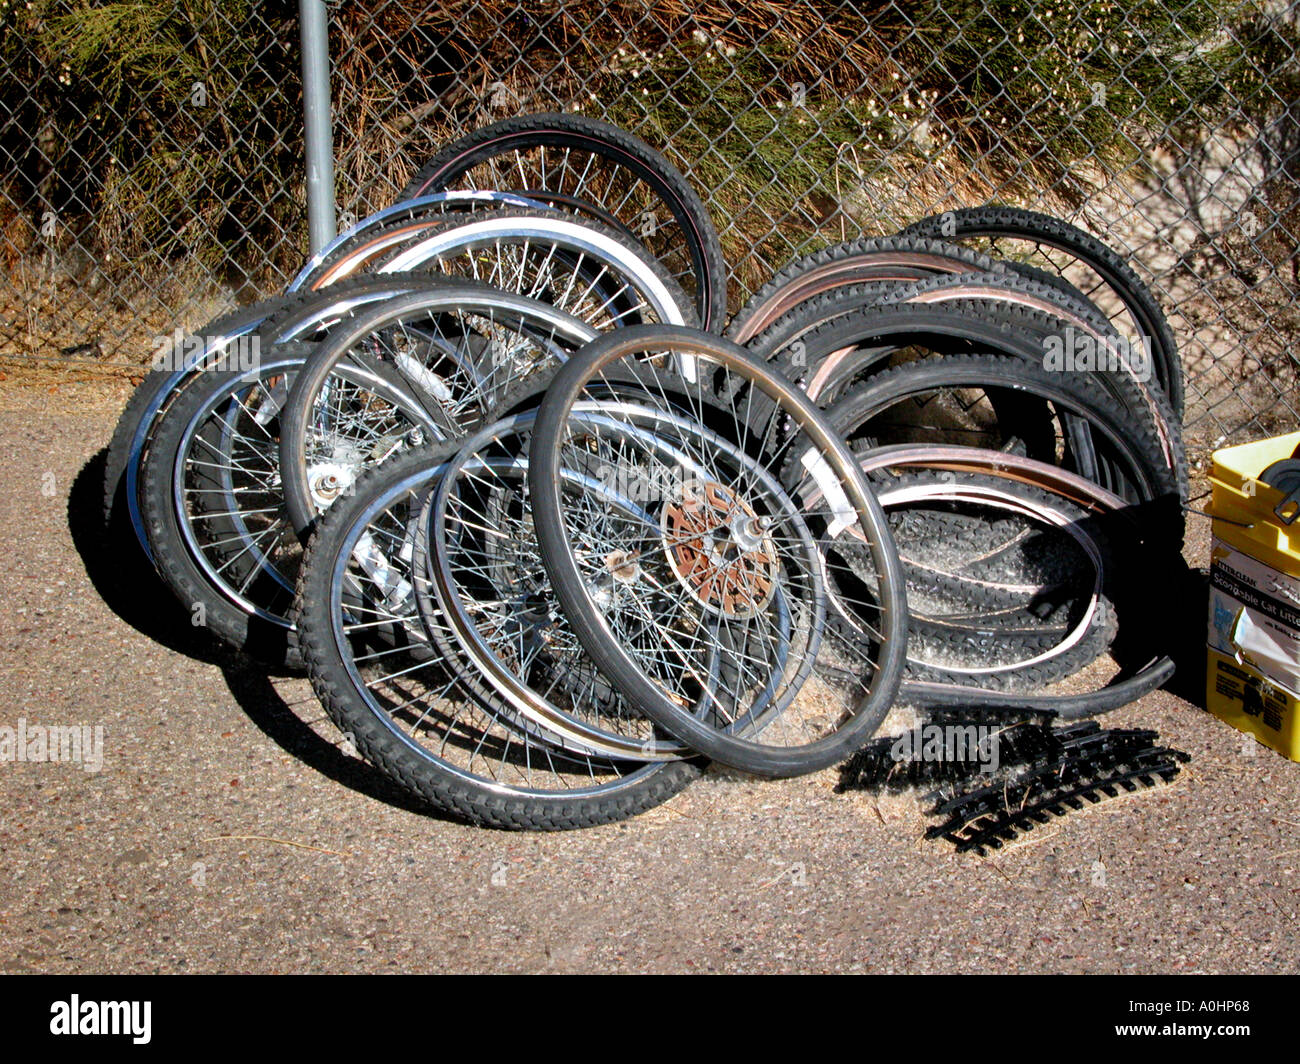 Used Wheels For Sale >> Used Bike Tires And Wheels For Sale Stock Photo 3265127 Alamy